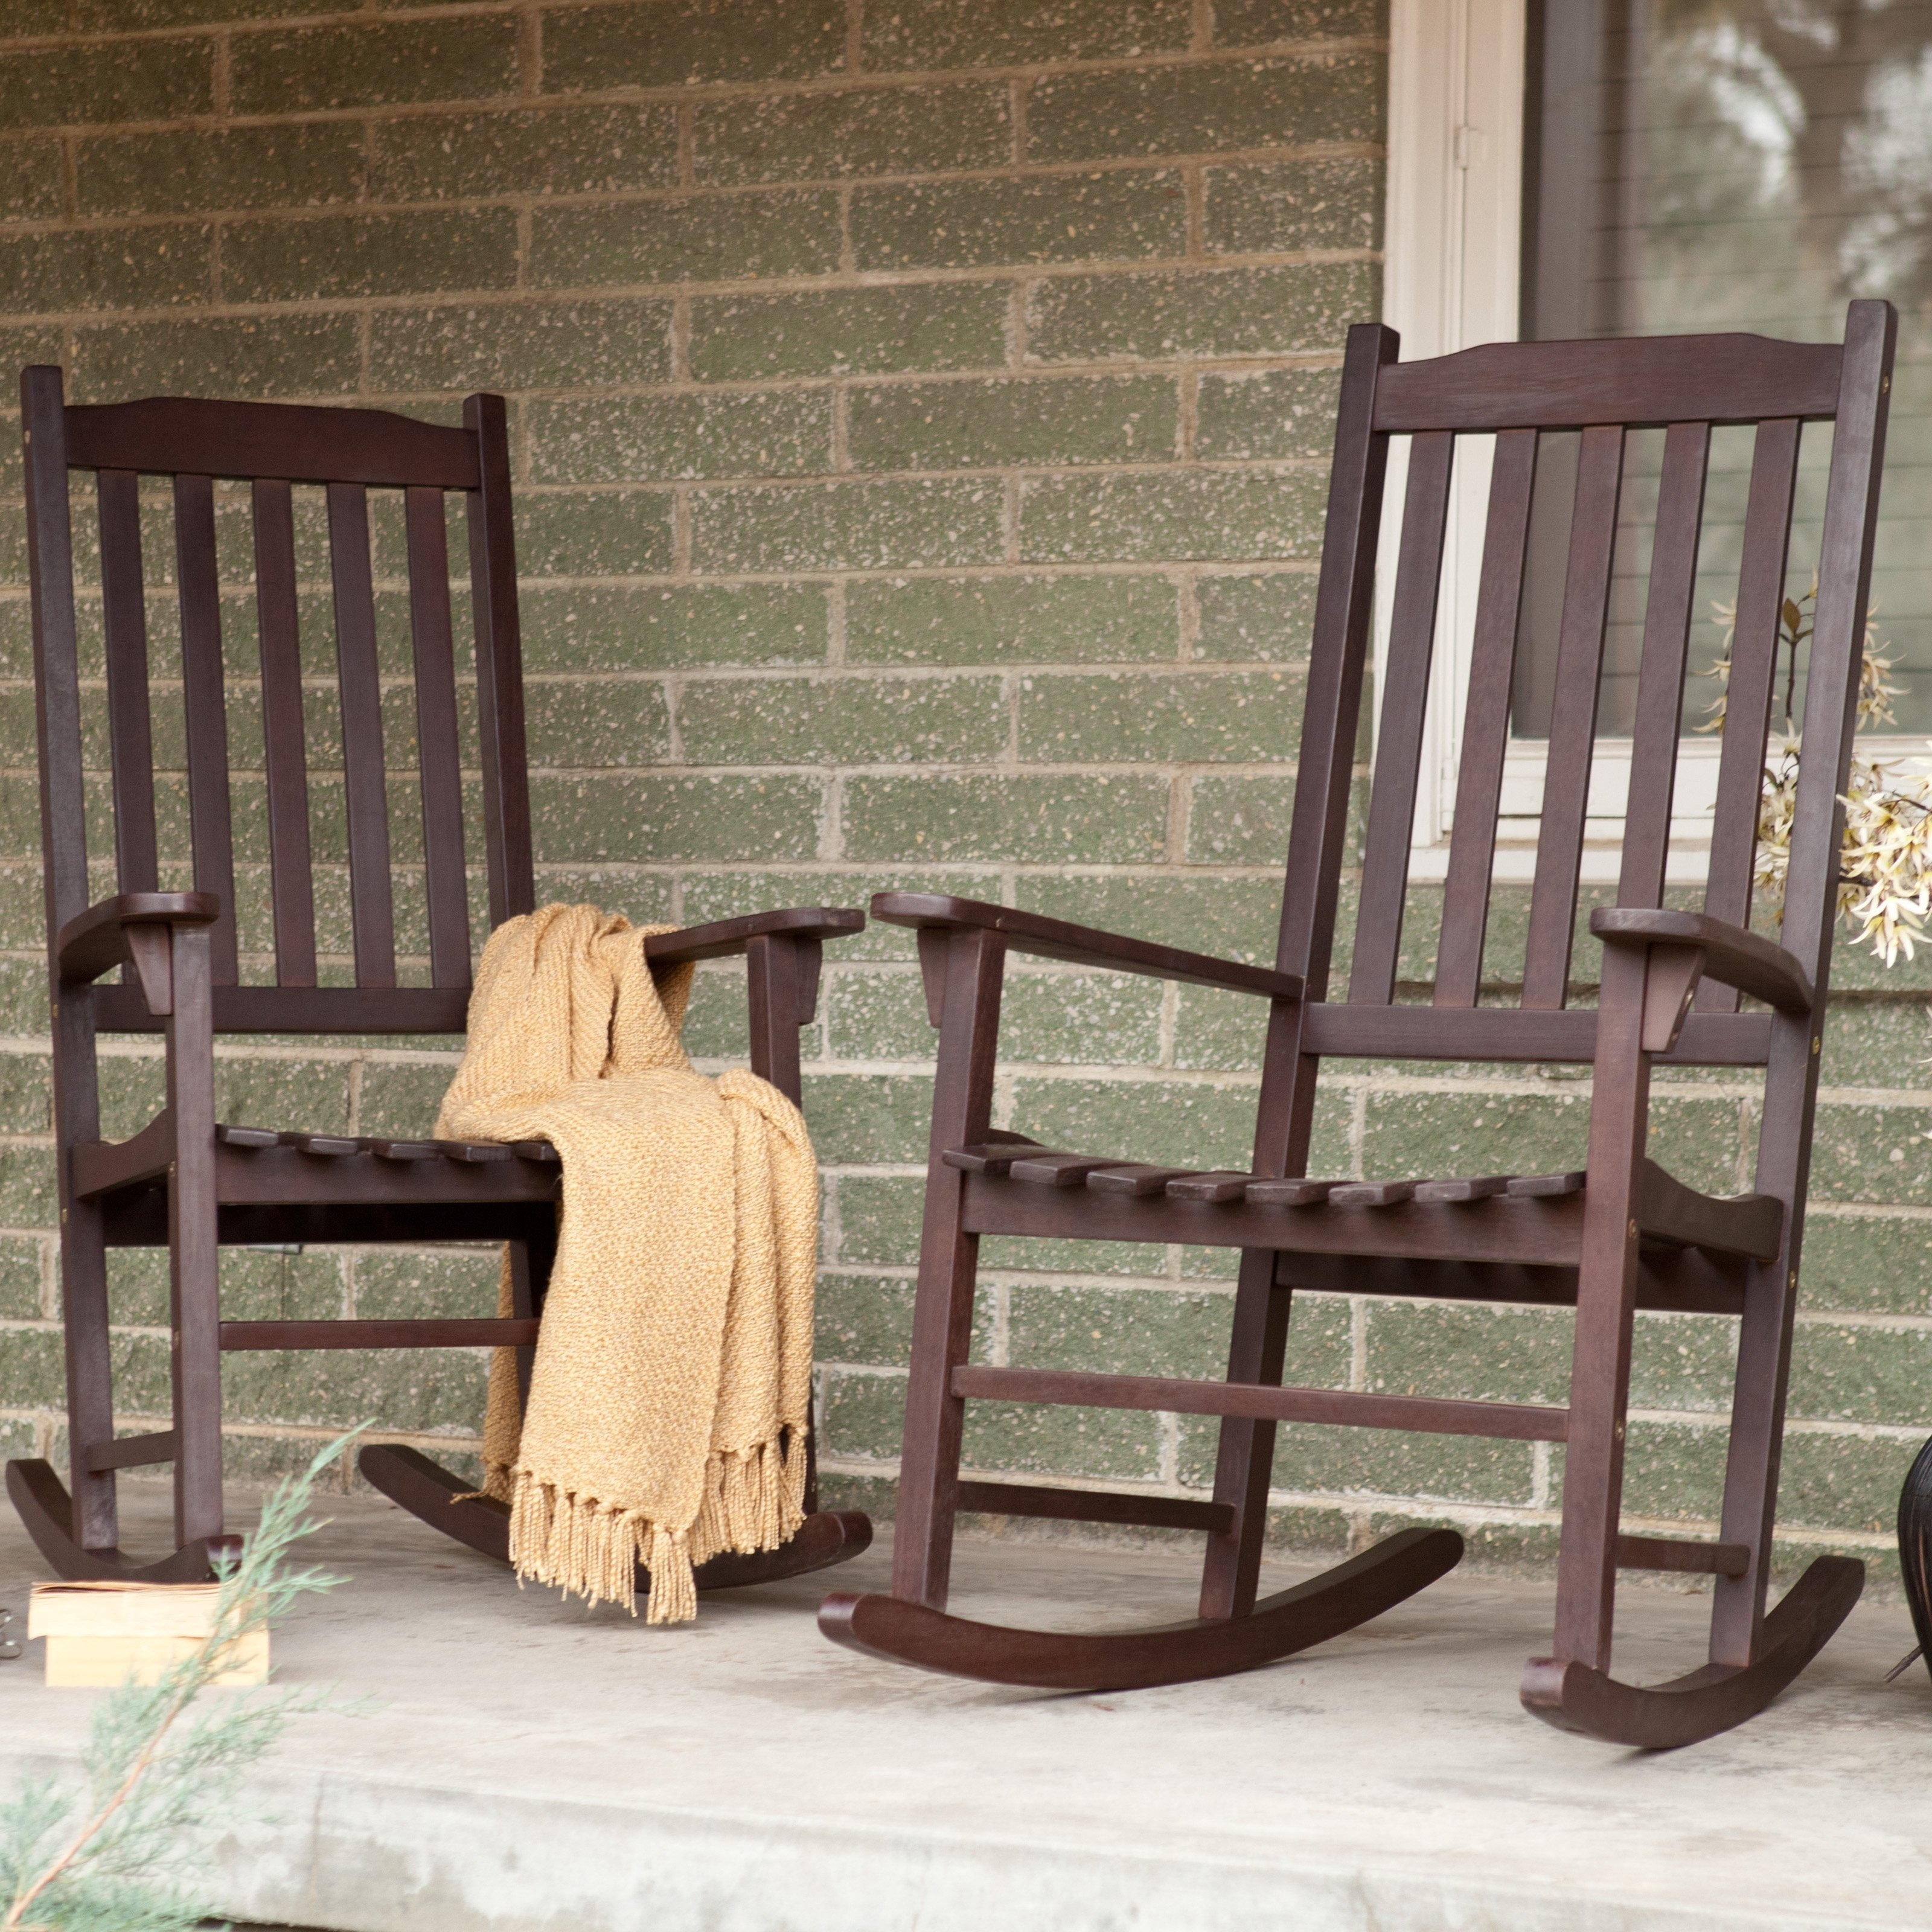 Furniture: Inspiring Outdoor Rocking Chair For Your Porch Or Your In Rocking Chairs For Outdoors (#5 of 15)